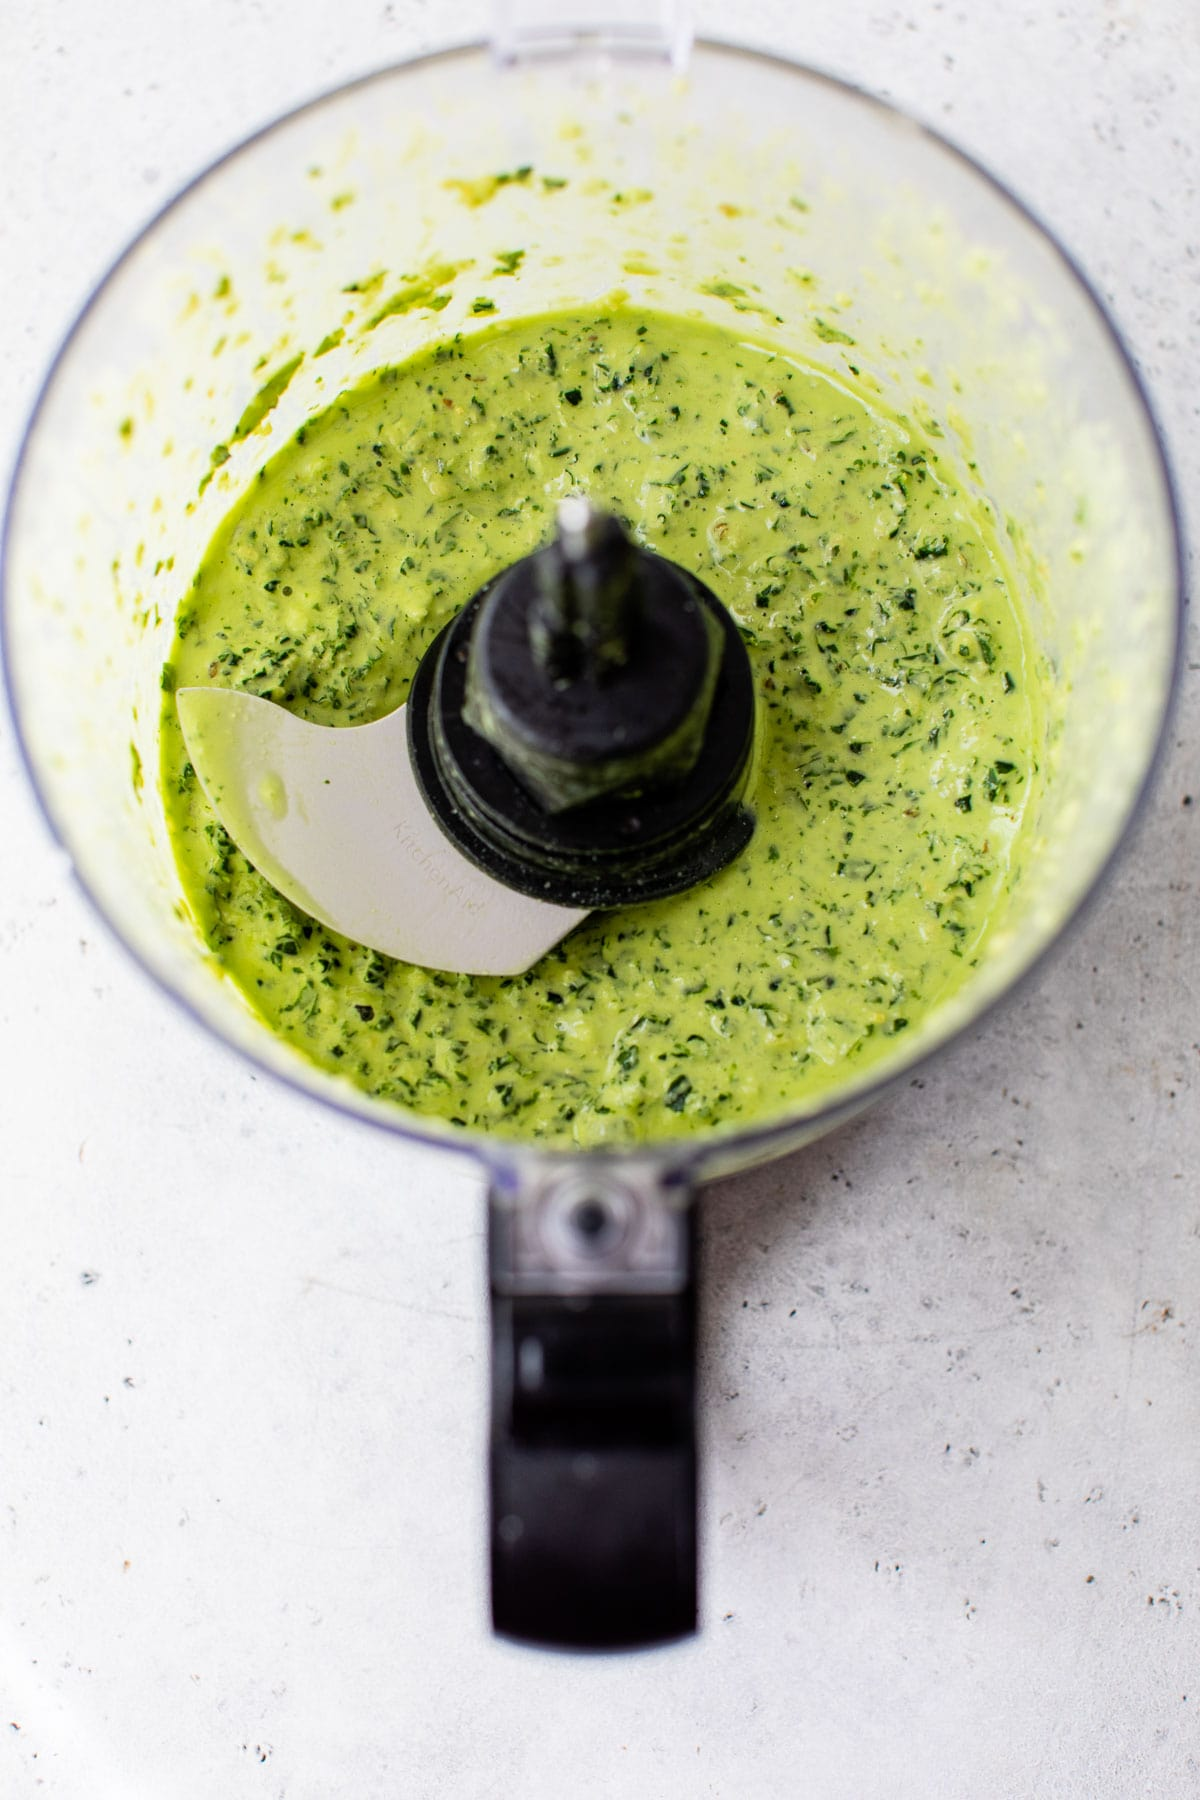 blended pesto sauce in a food processor